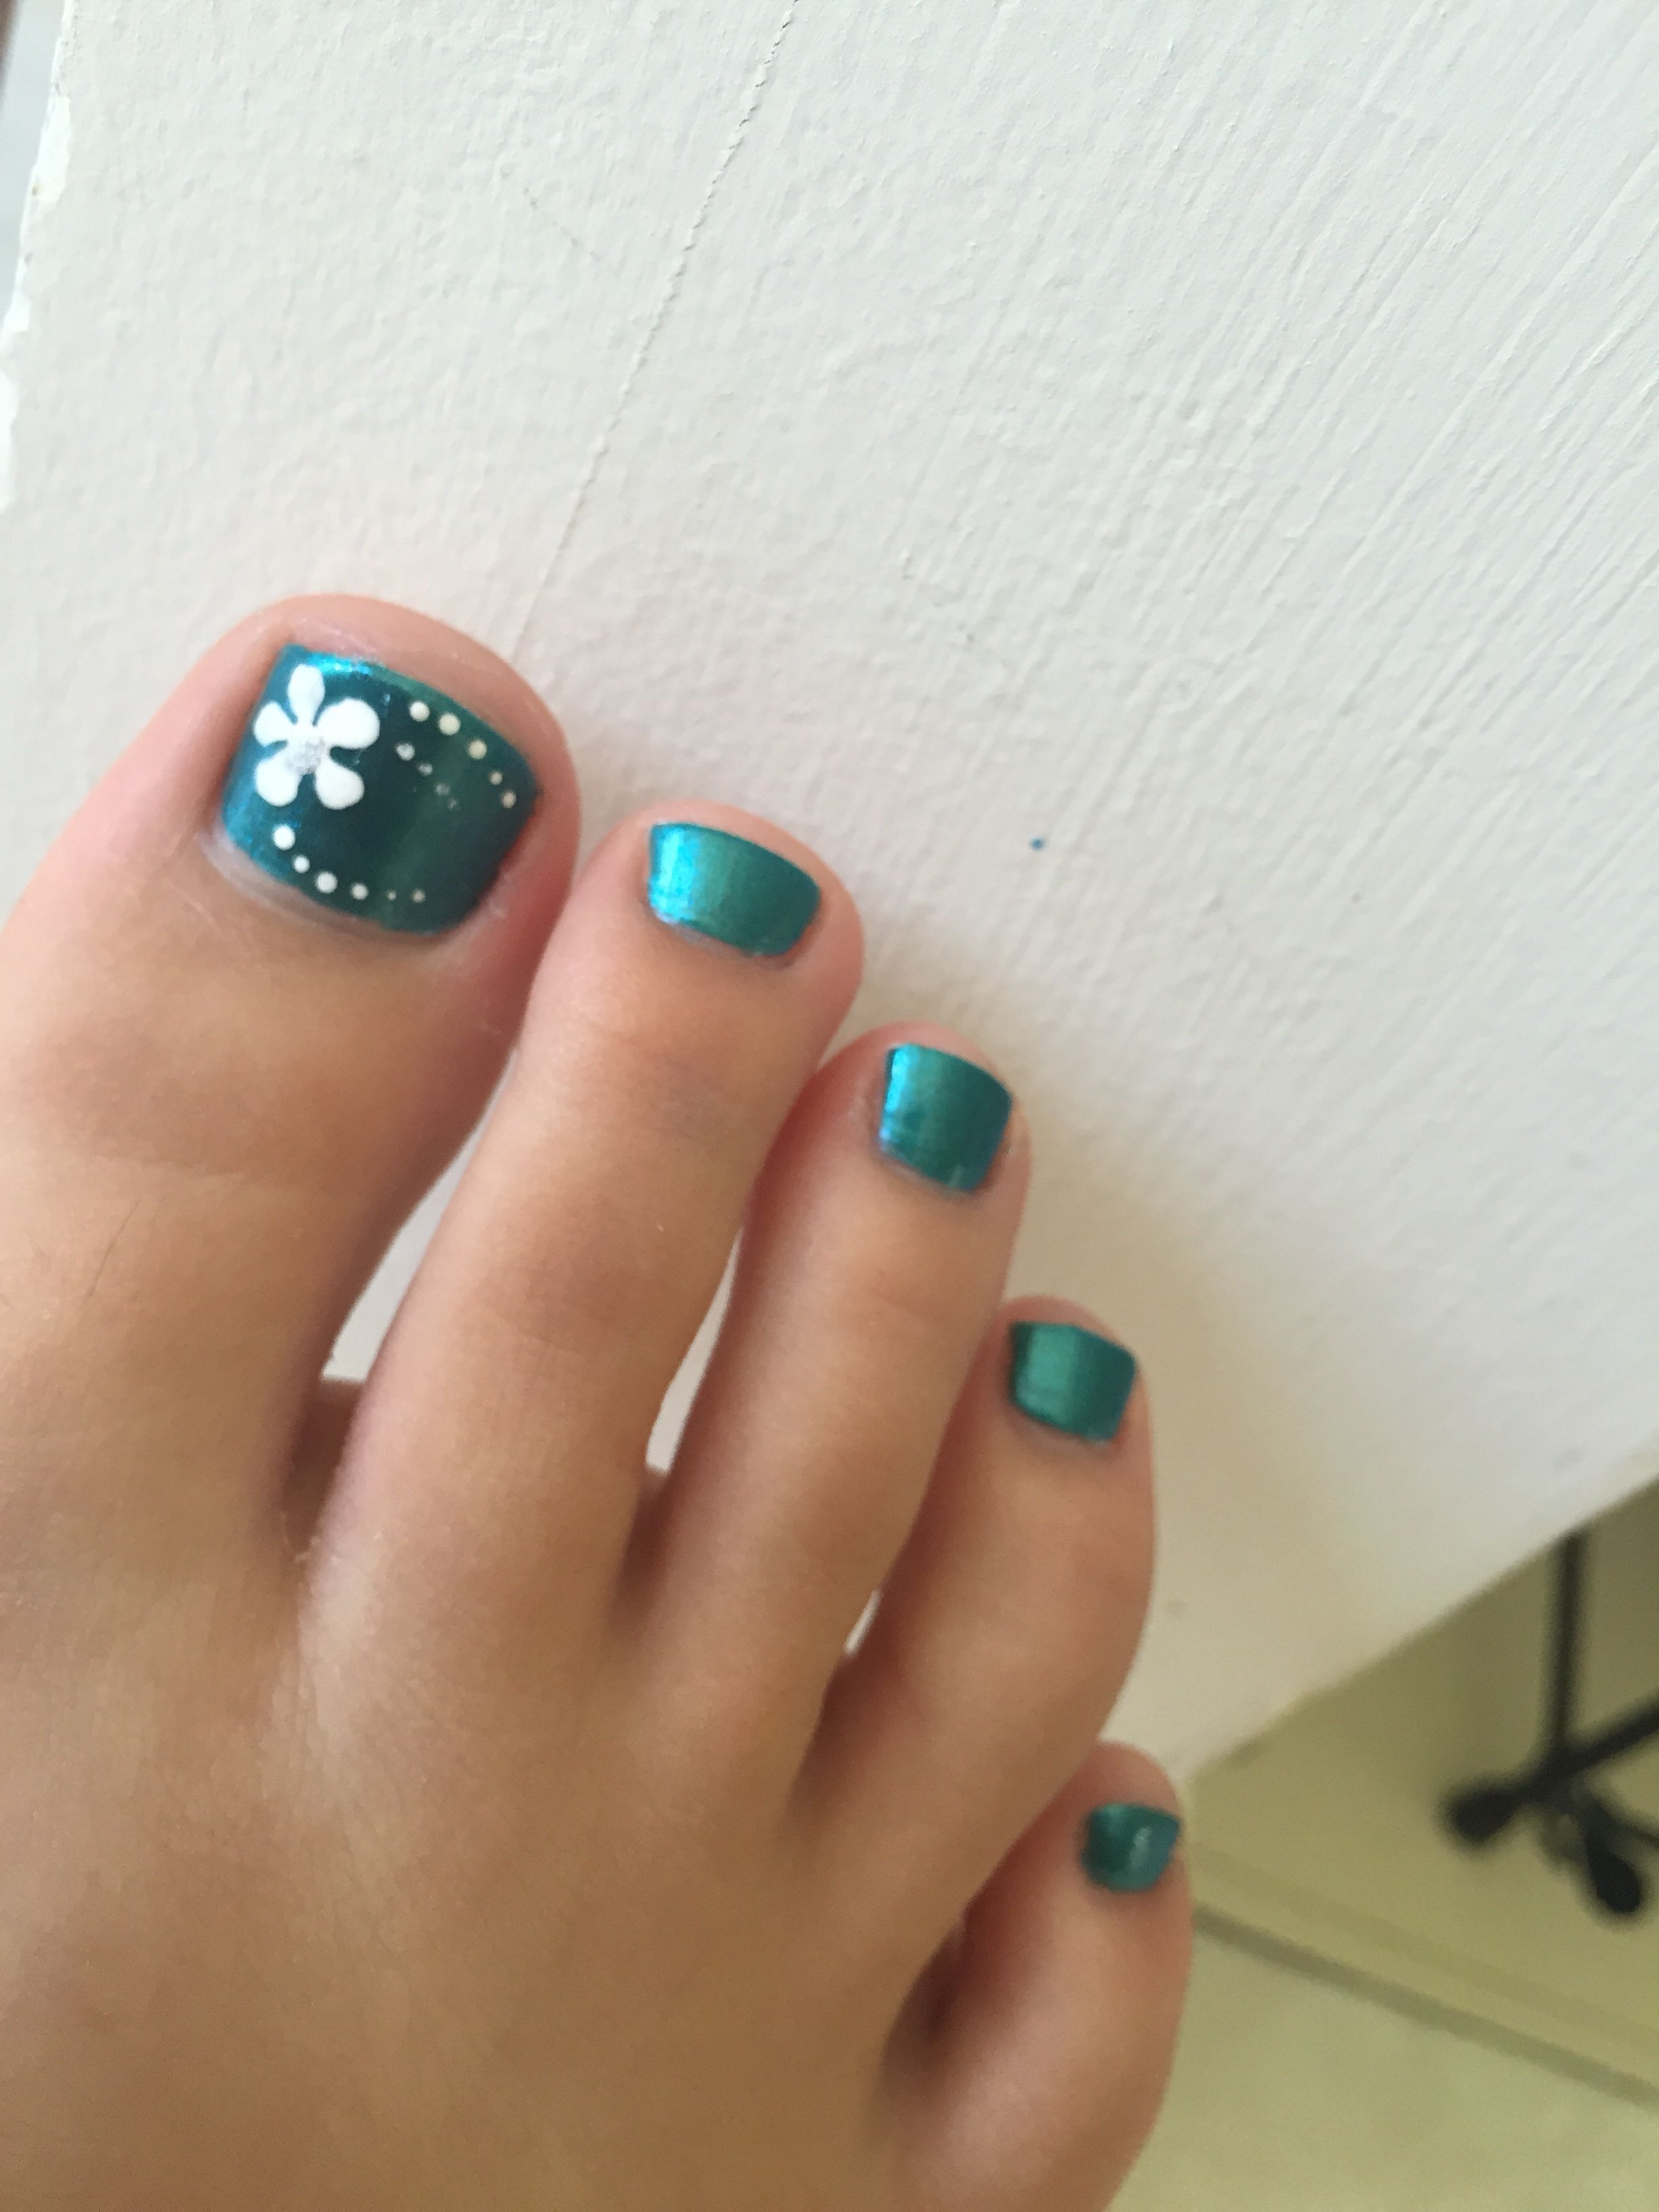 Blue toenails with flower #nails #toenails #toes | Nails | Pinterest ...